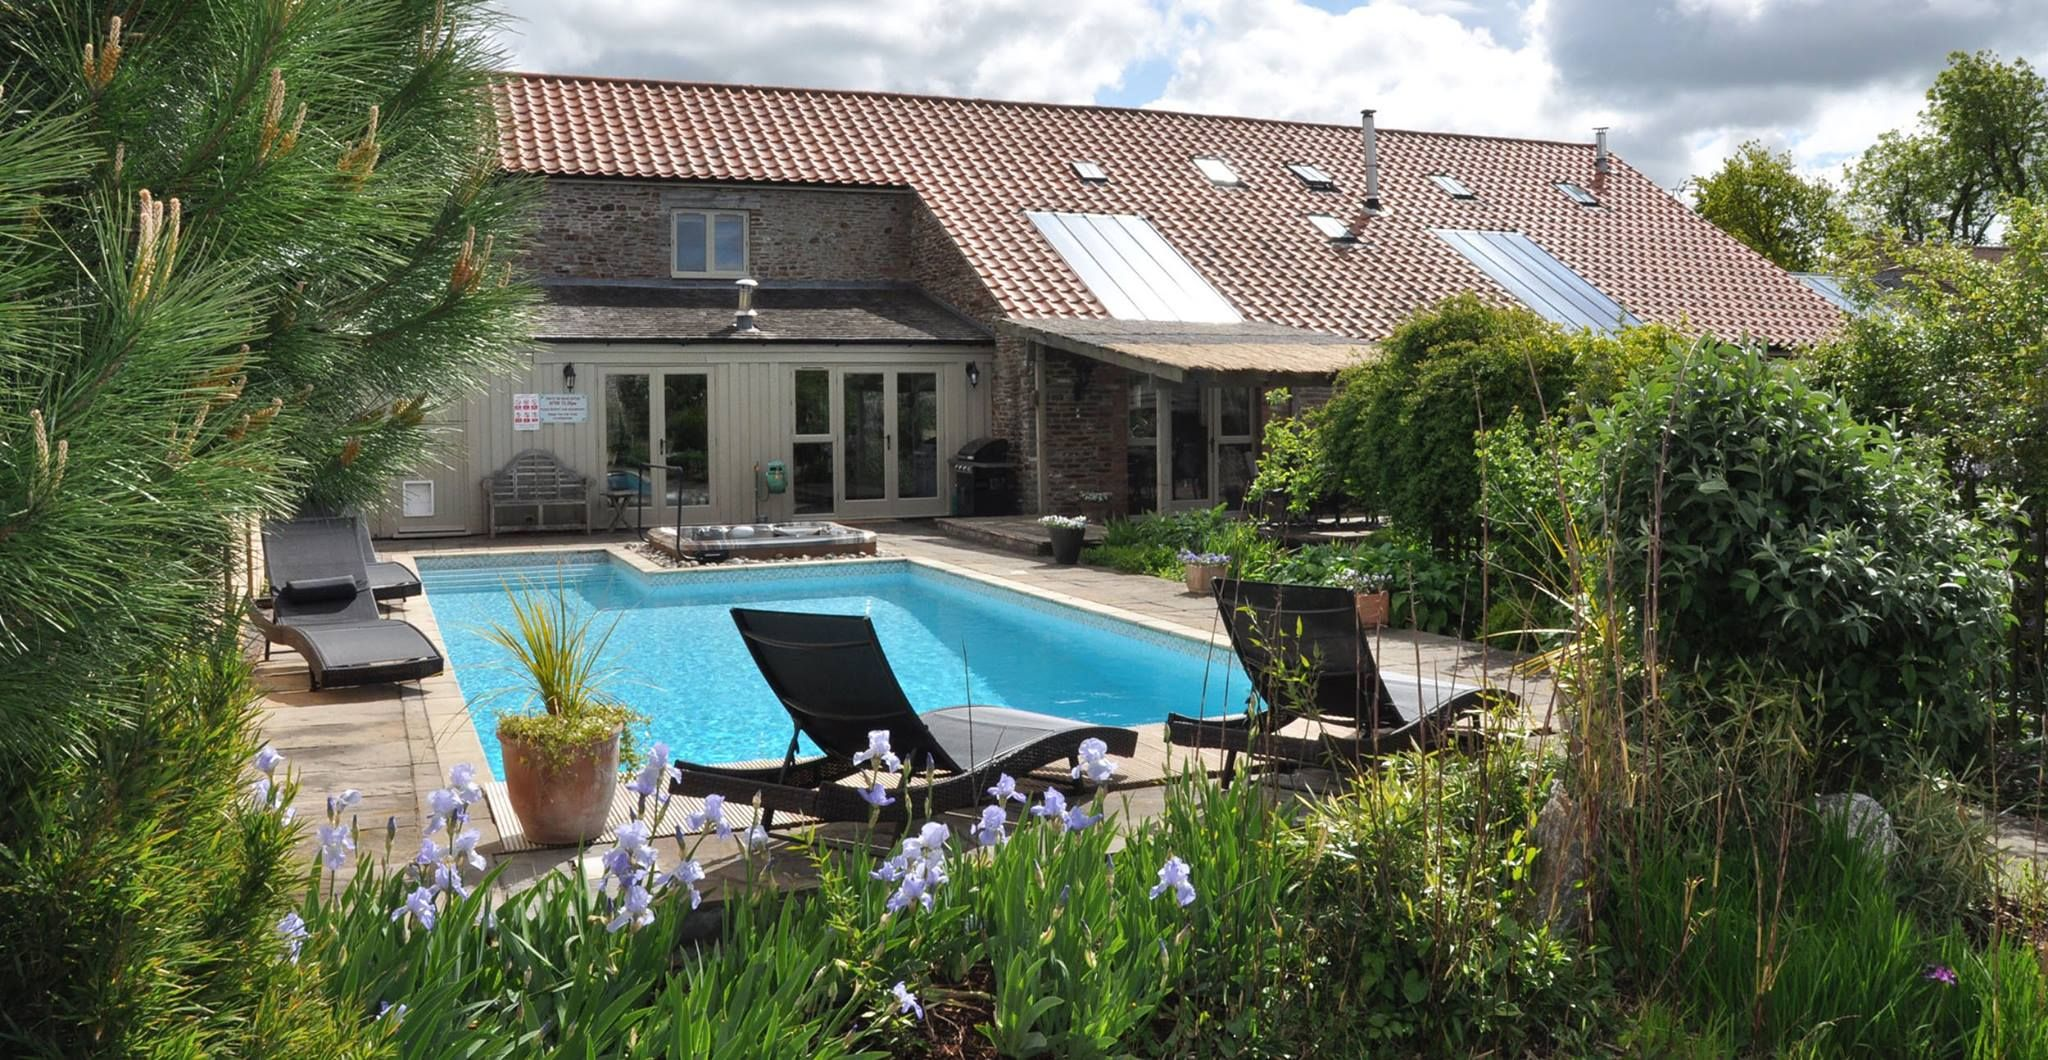 Henfield Barn has spa facilities, jacuzzi and an outdoor pool (heated Easter – October)